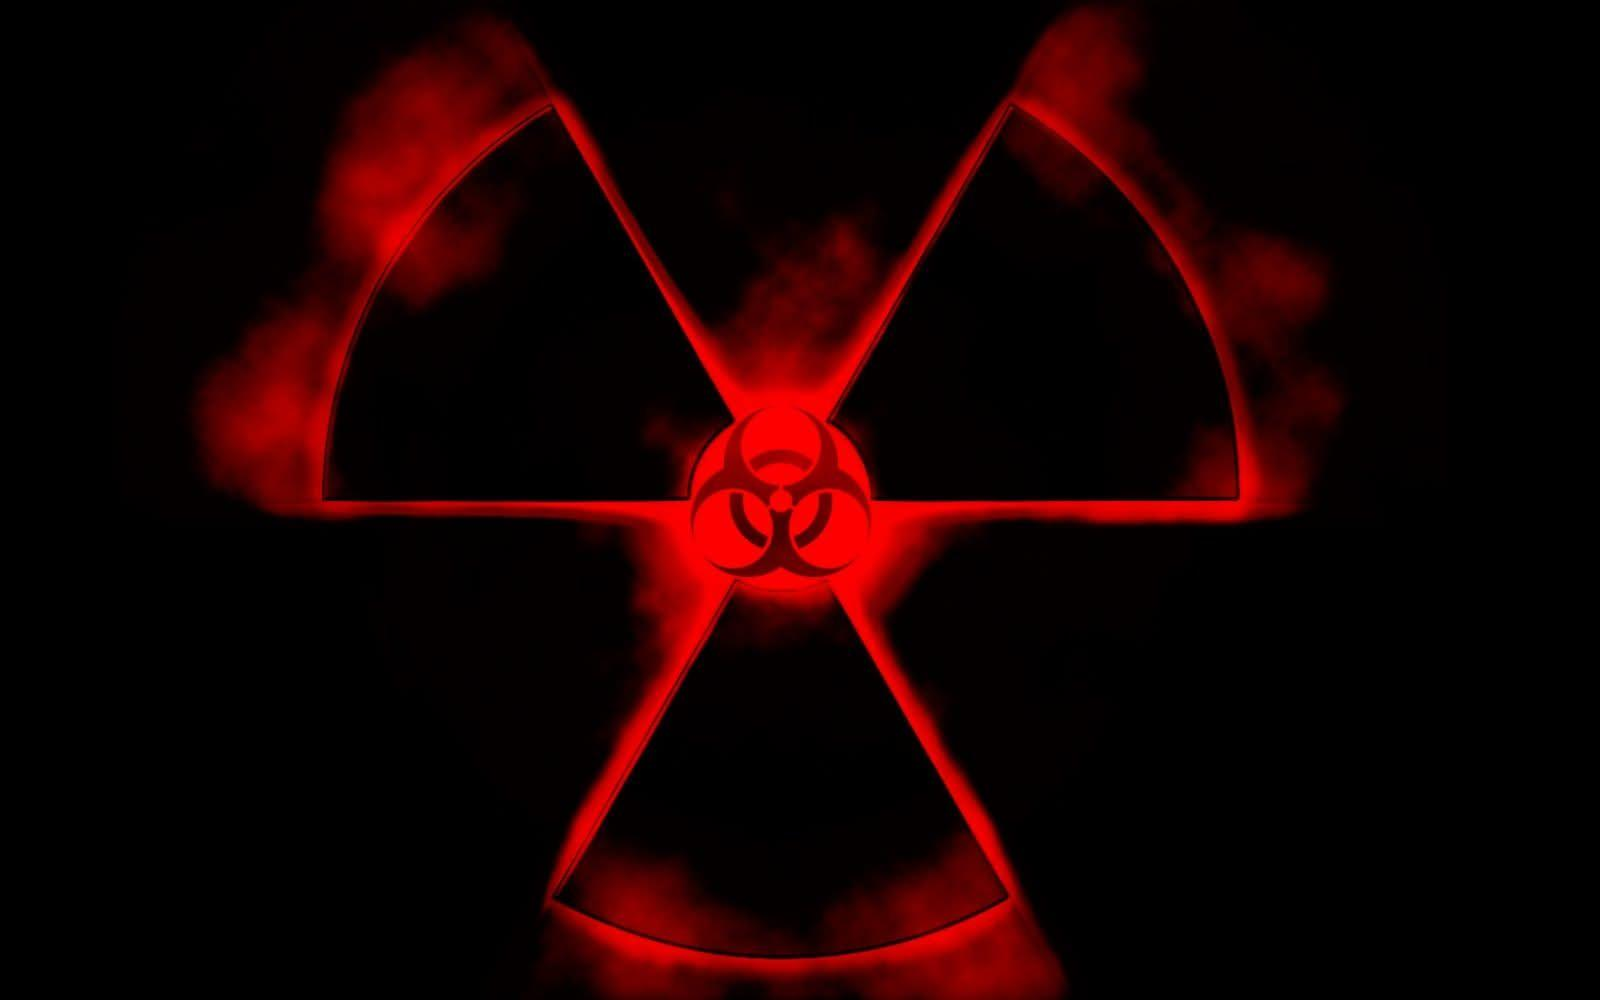 Radioactive Zombie Wallpaper Biohazard Symbol Wallp...